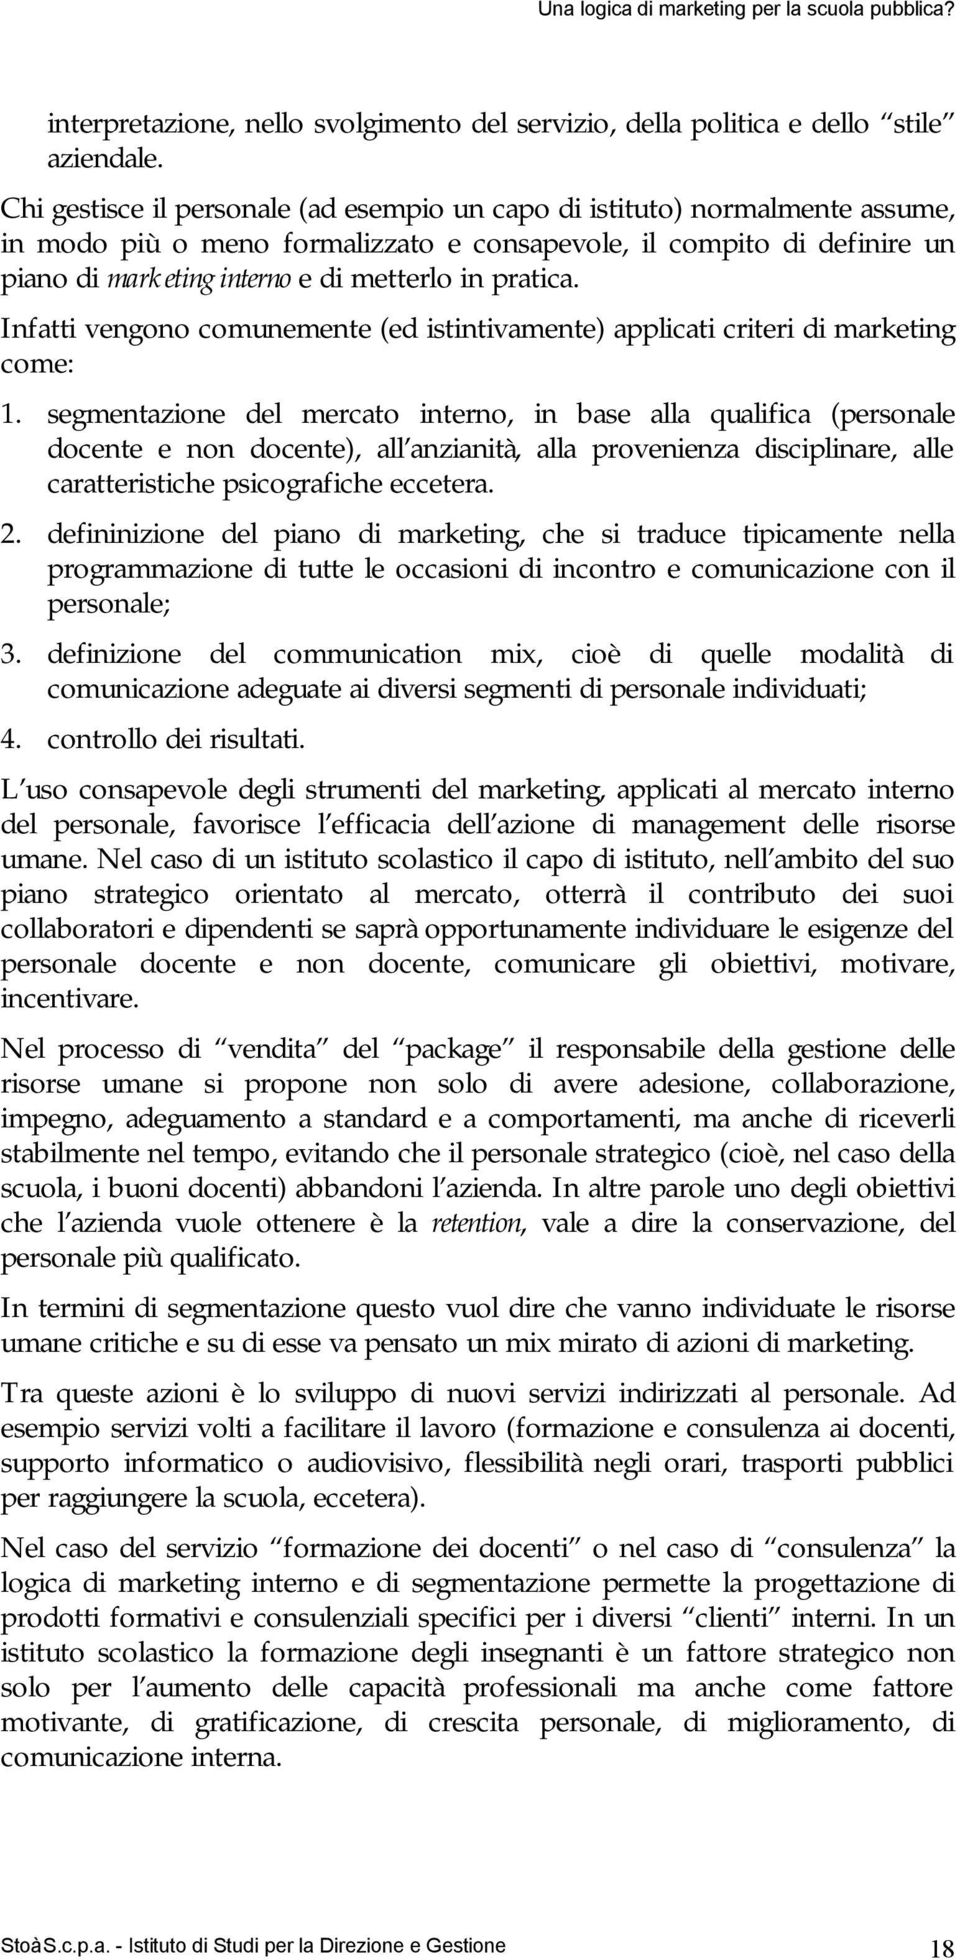 pratica. Infatti vengono comunemente (ed istintivamente) applicati criteri di marketing come: 1.